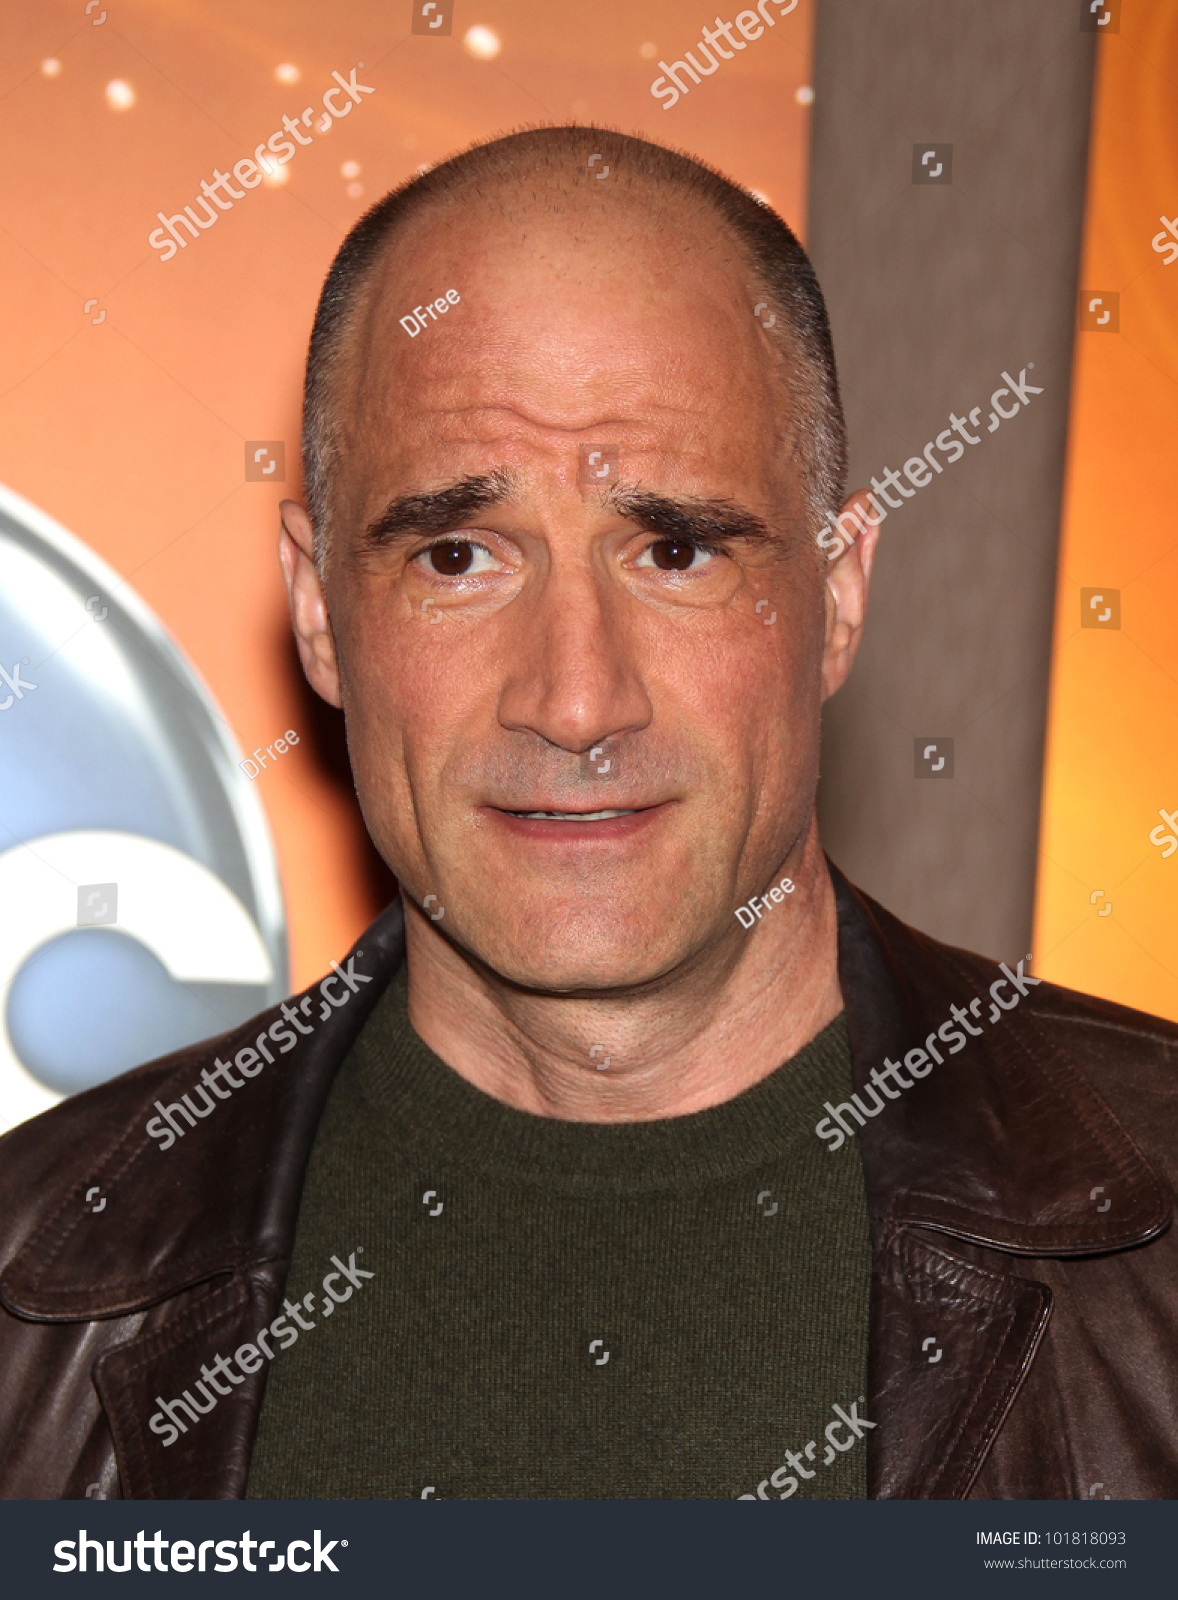 Elias Koteas nudes (34 fotos) Sideboobs, YouTube, in bikini